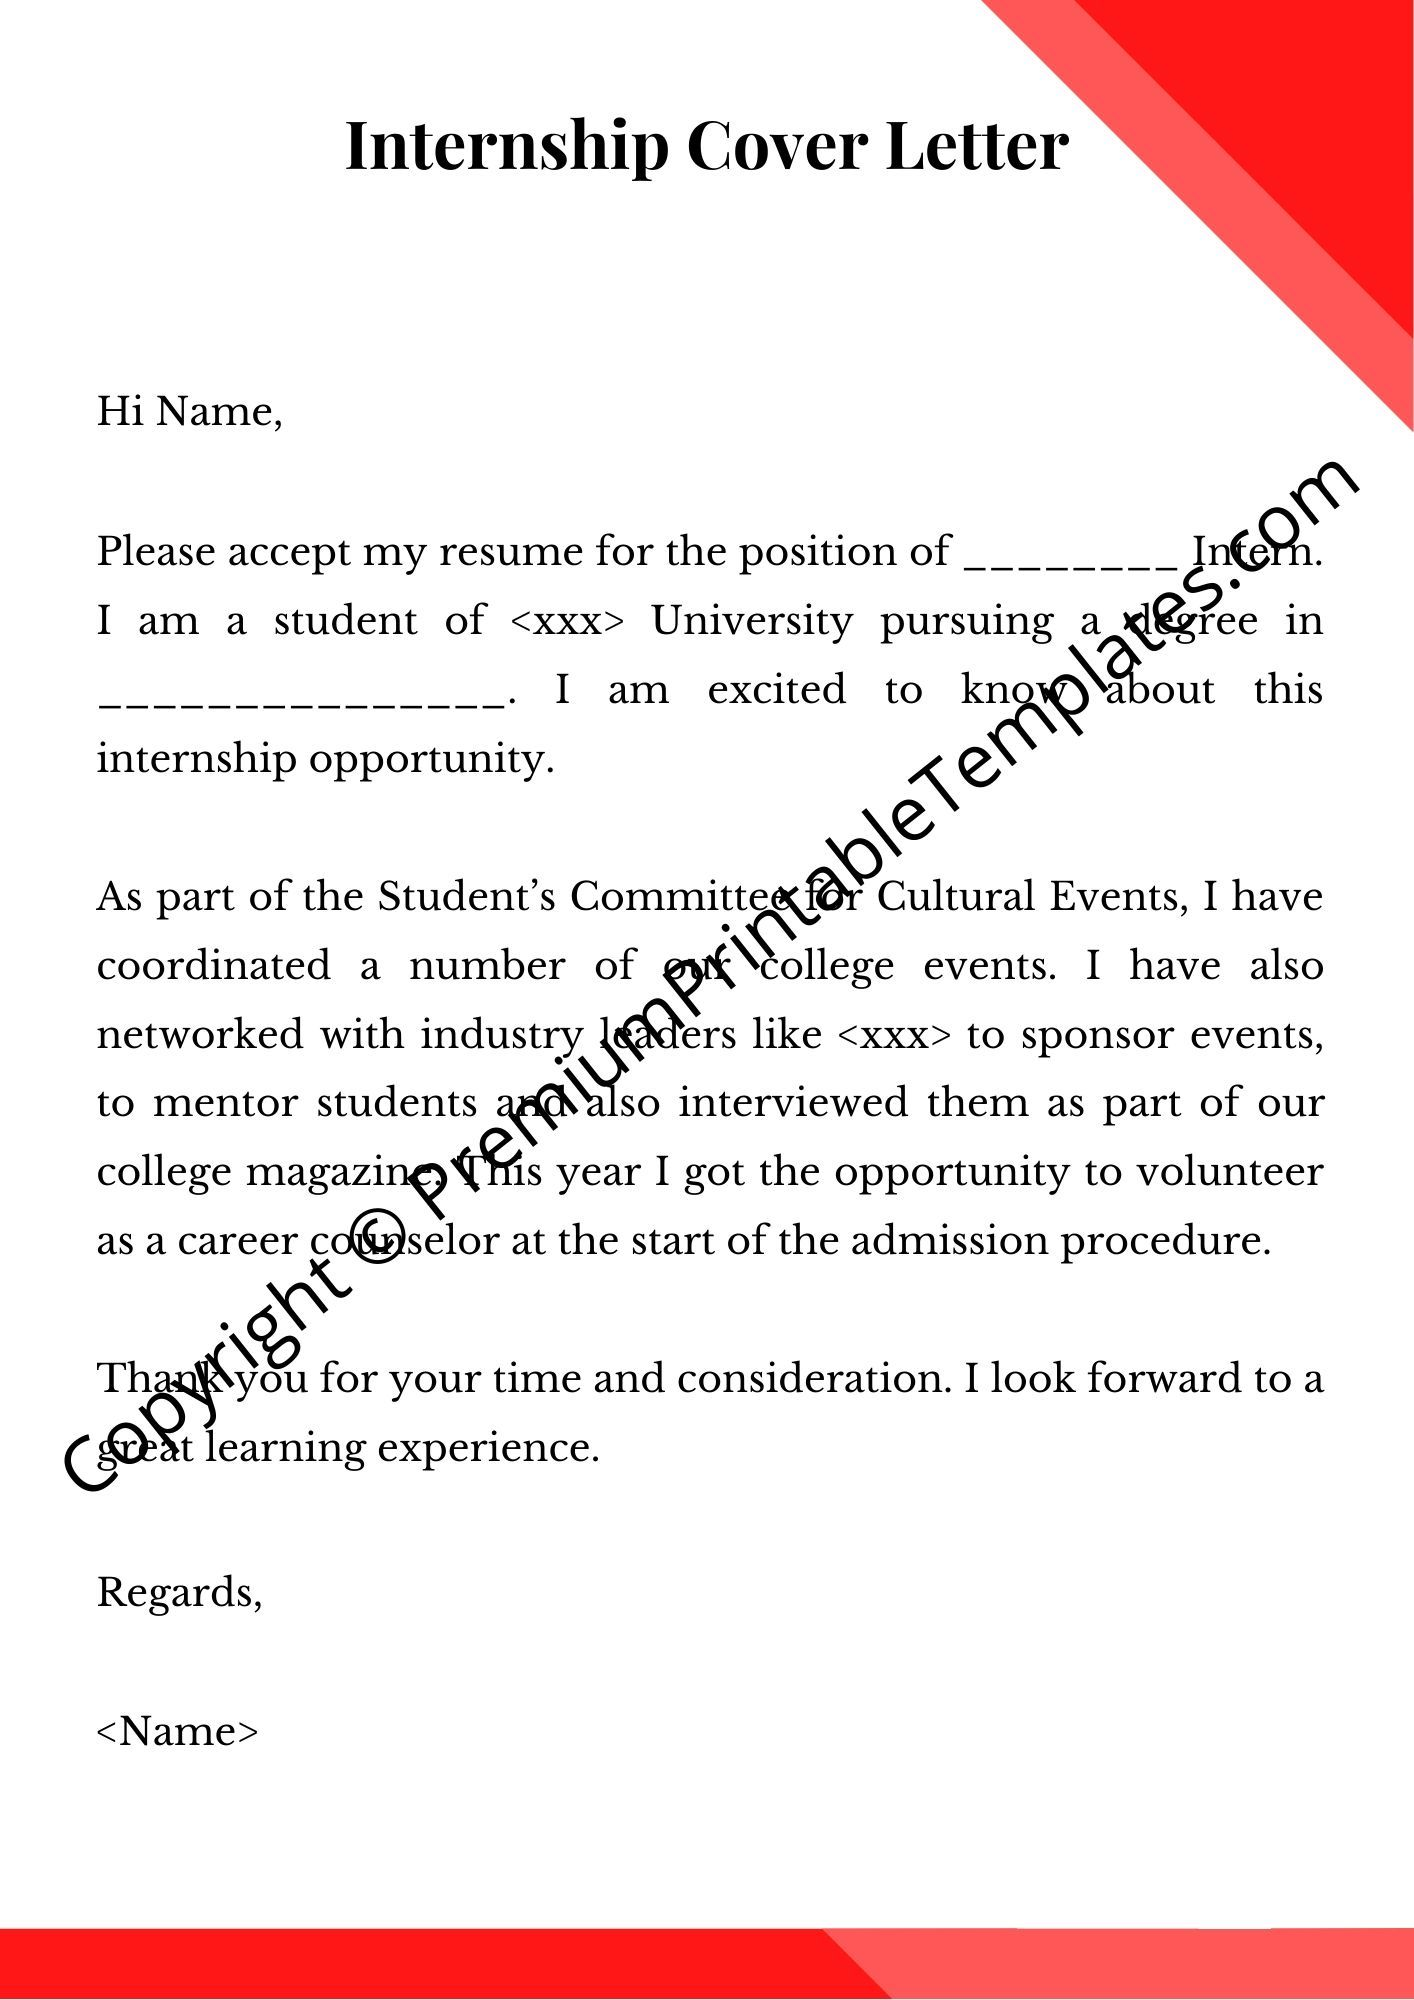 Cover Letter For Internship Cover Letter Pack Of 5 Premium Printable Templates Cover Letter For Internship Cover Letter Template Resume Cover Letter Template